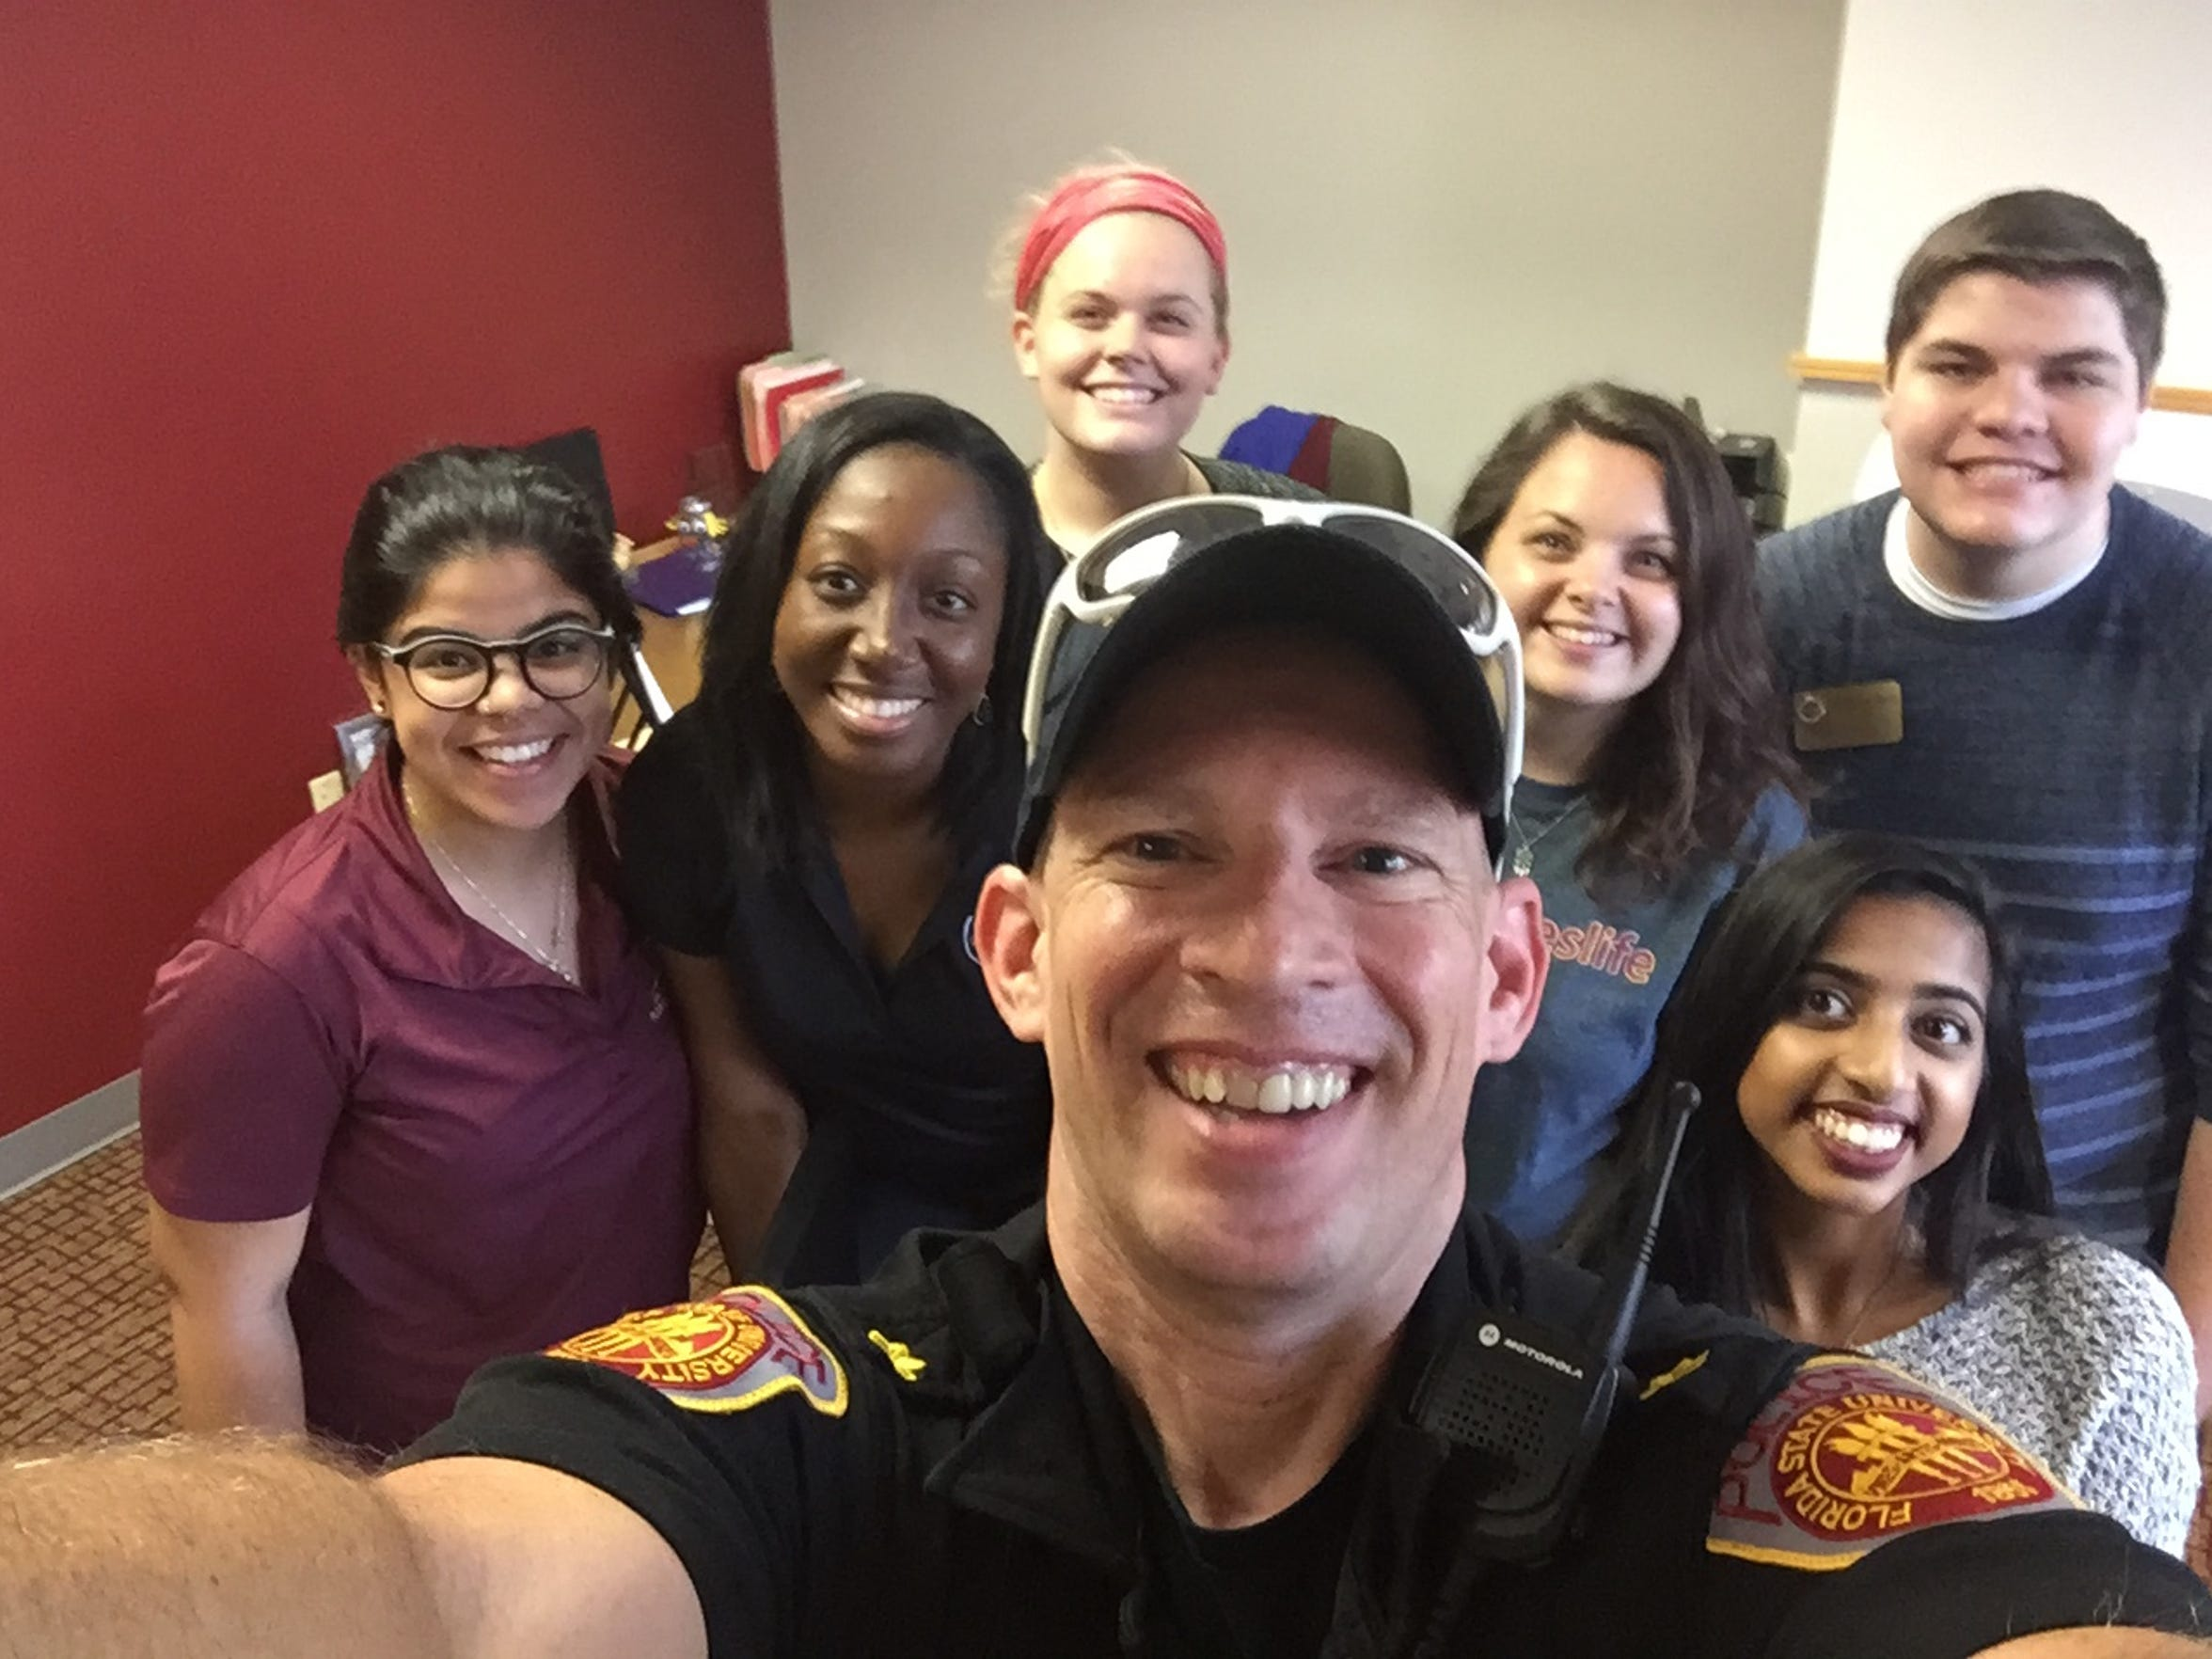 Major Russell poses for a picture with a mix of University Housing staff and students during residence hall move-in.